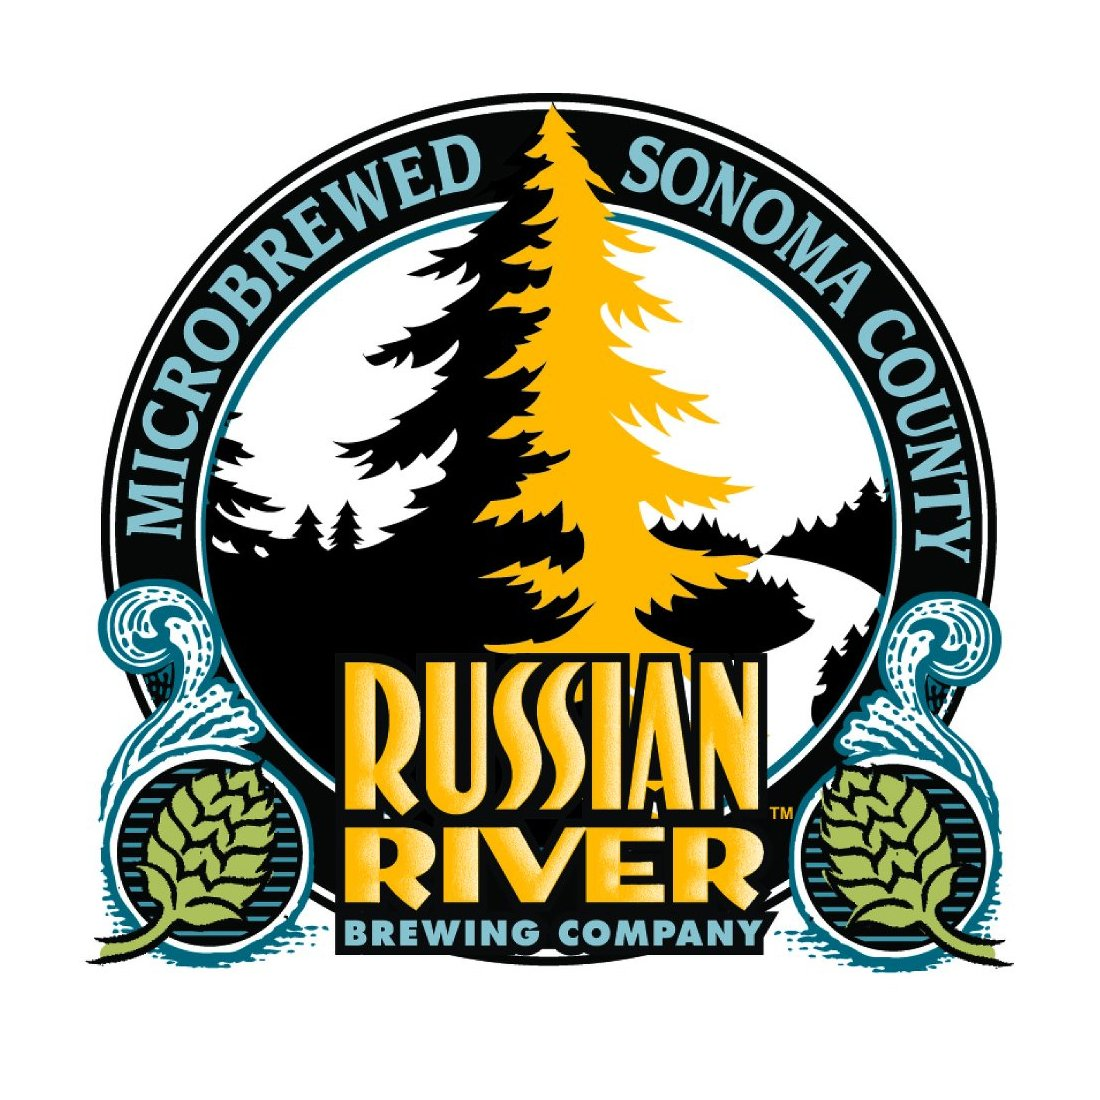 Russian River Brewing Company.